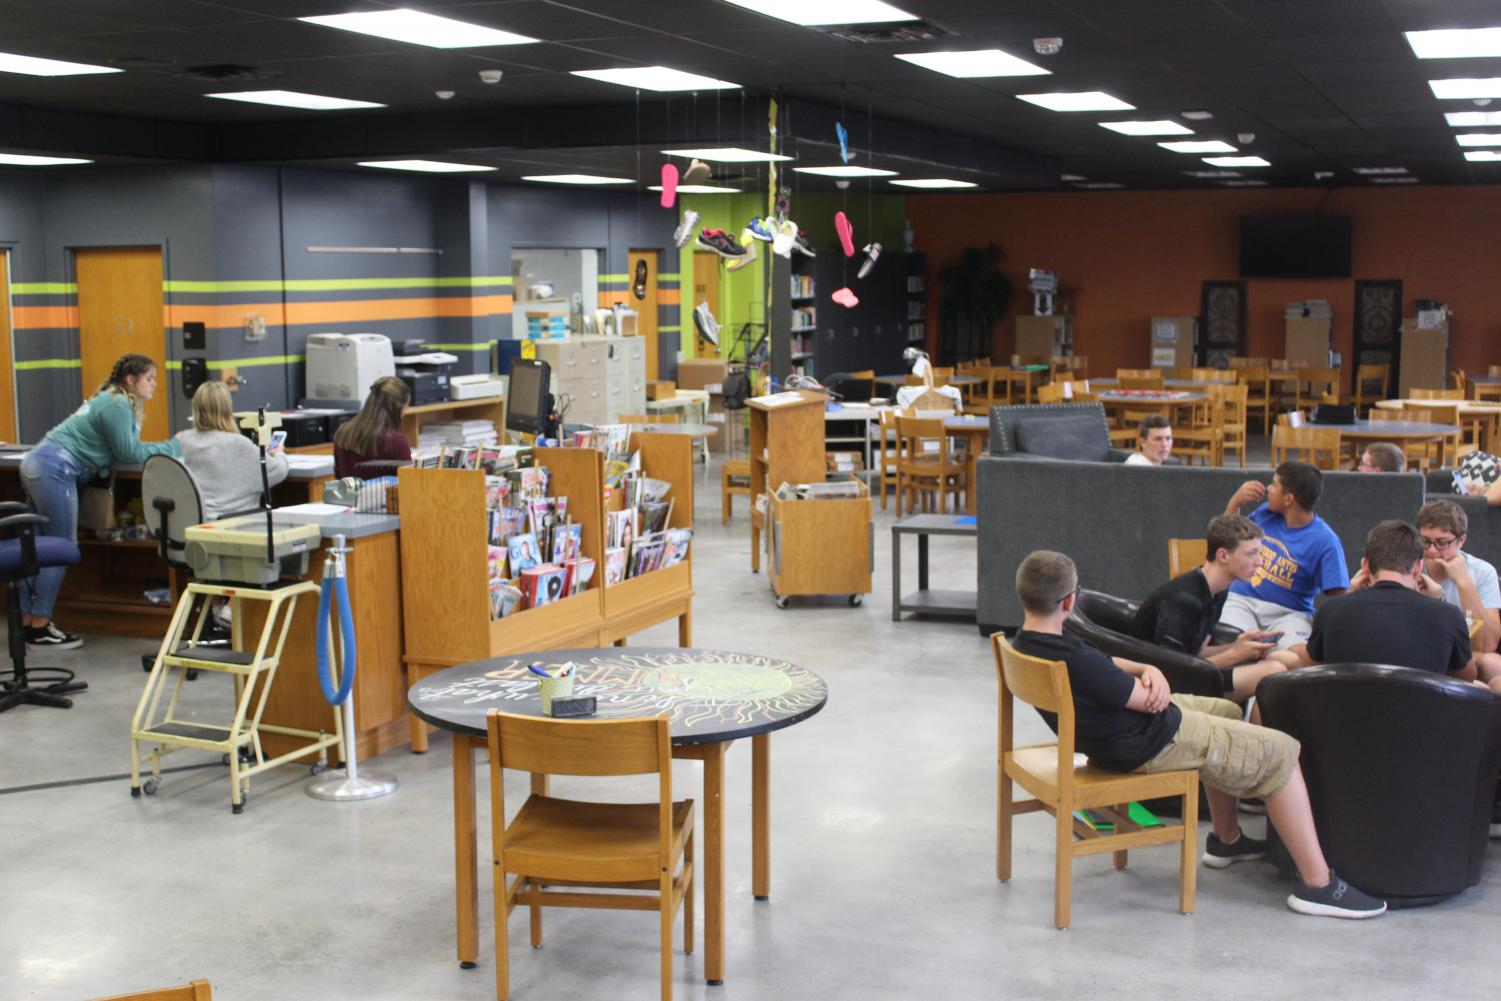 The media center has made some new renovations that are proving quite popular with B-A students.